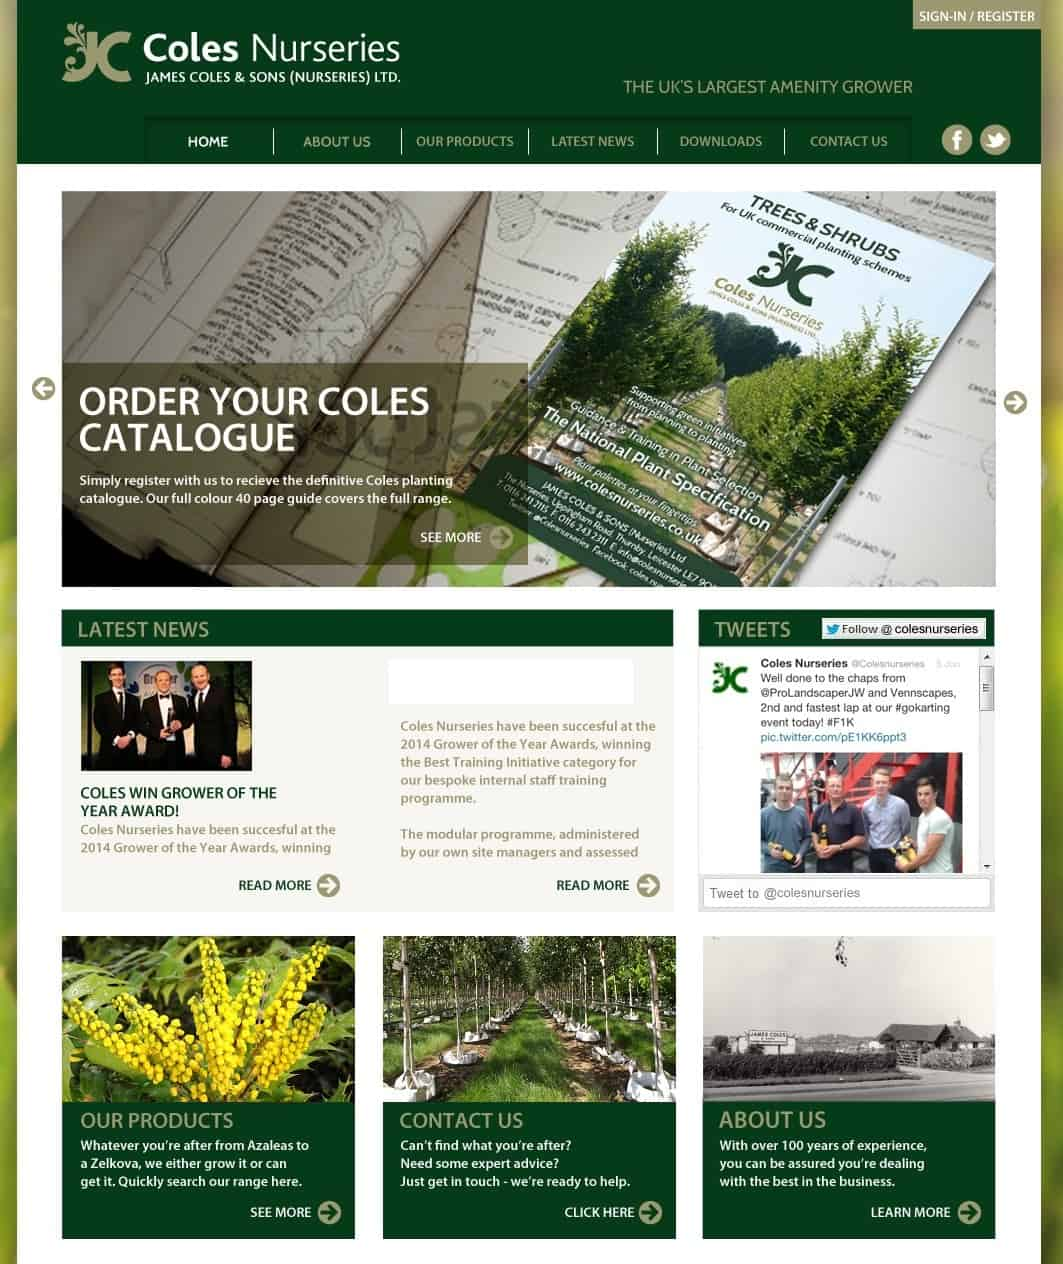 1 Coles_Nurs-WEBSITE-vis-home